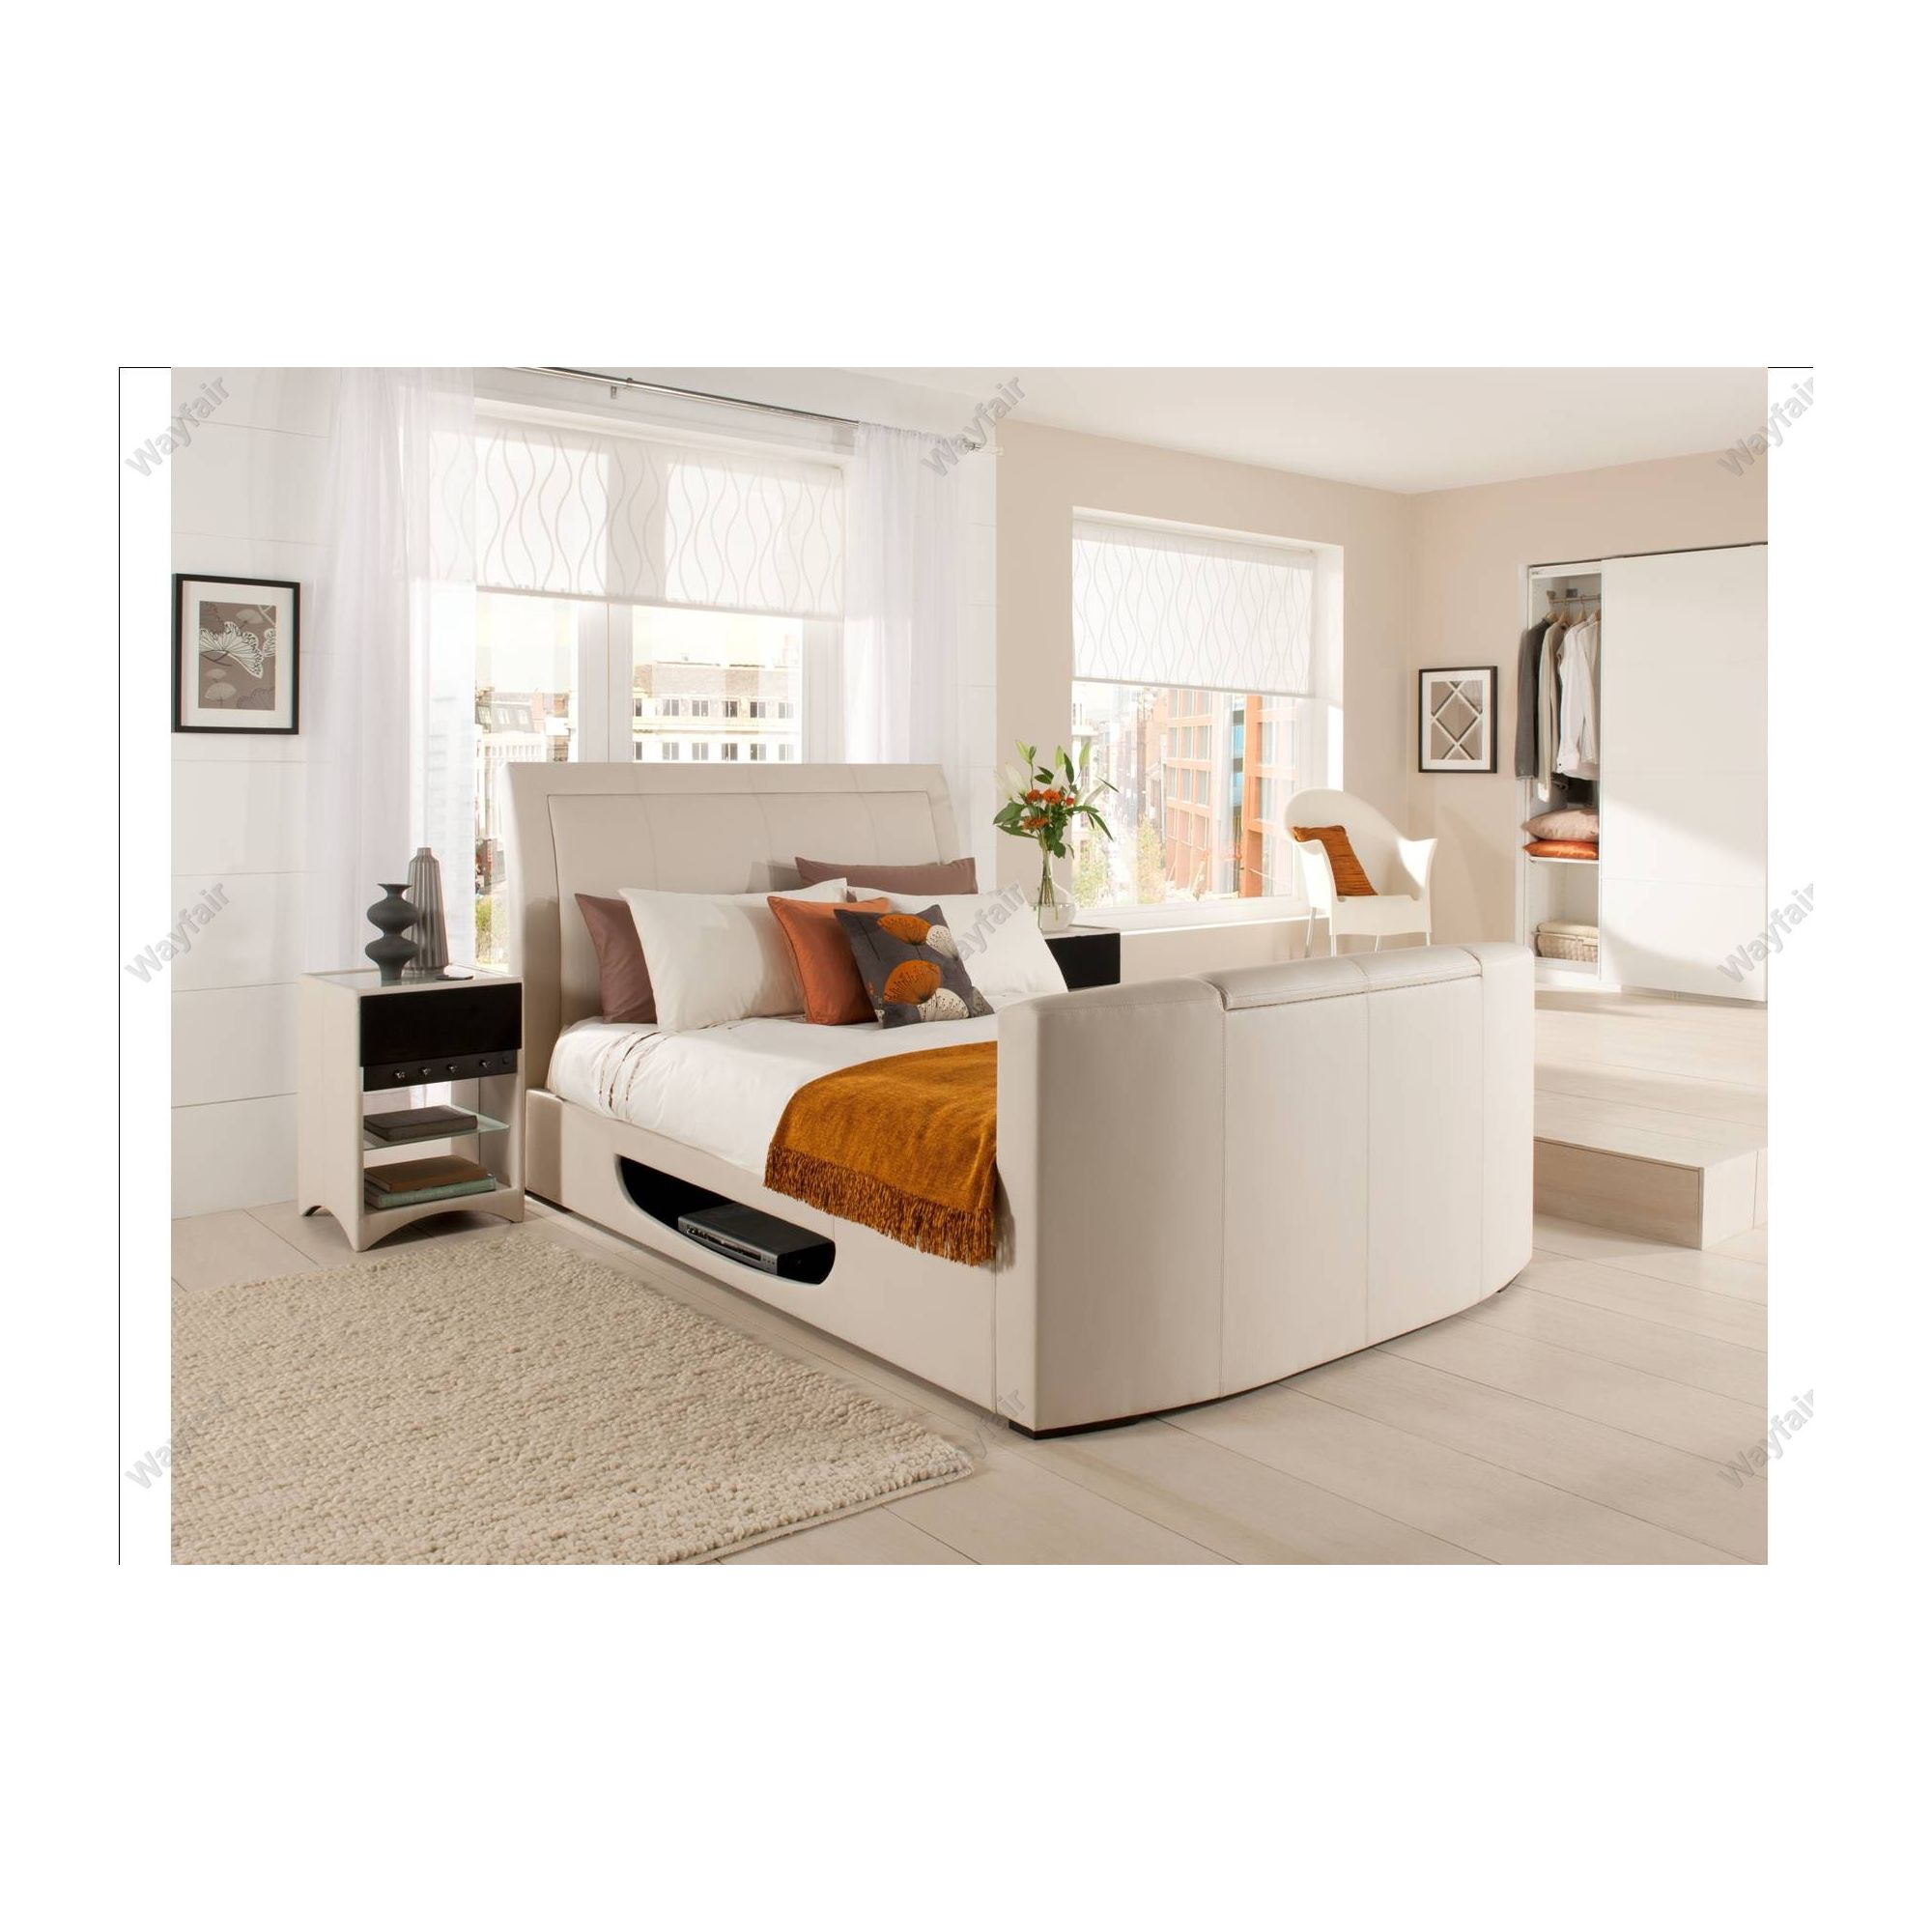 Super king size bed with tv - Kaydian Stanton Tv Bed Frame King 5 Cream